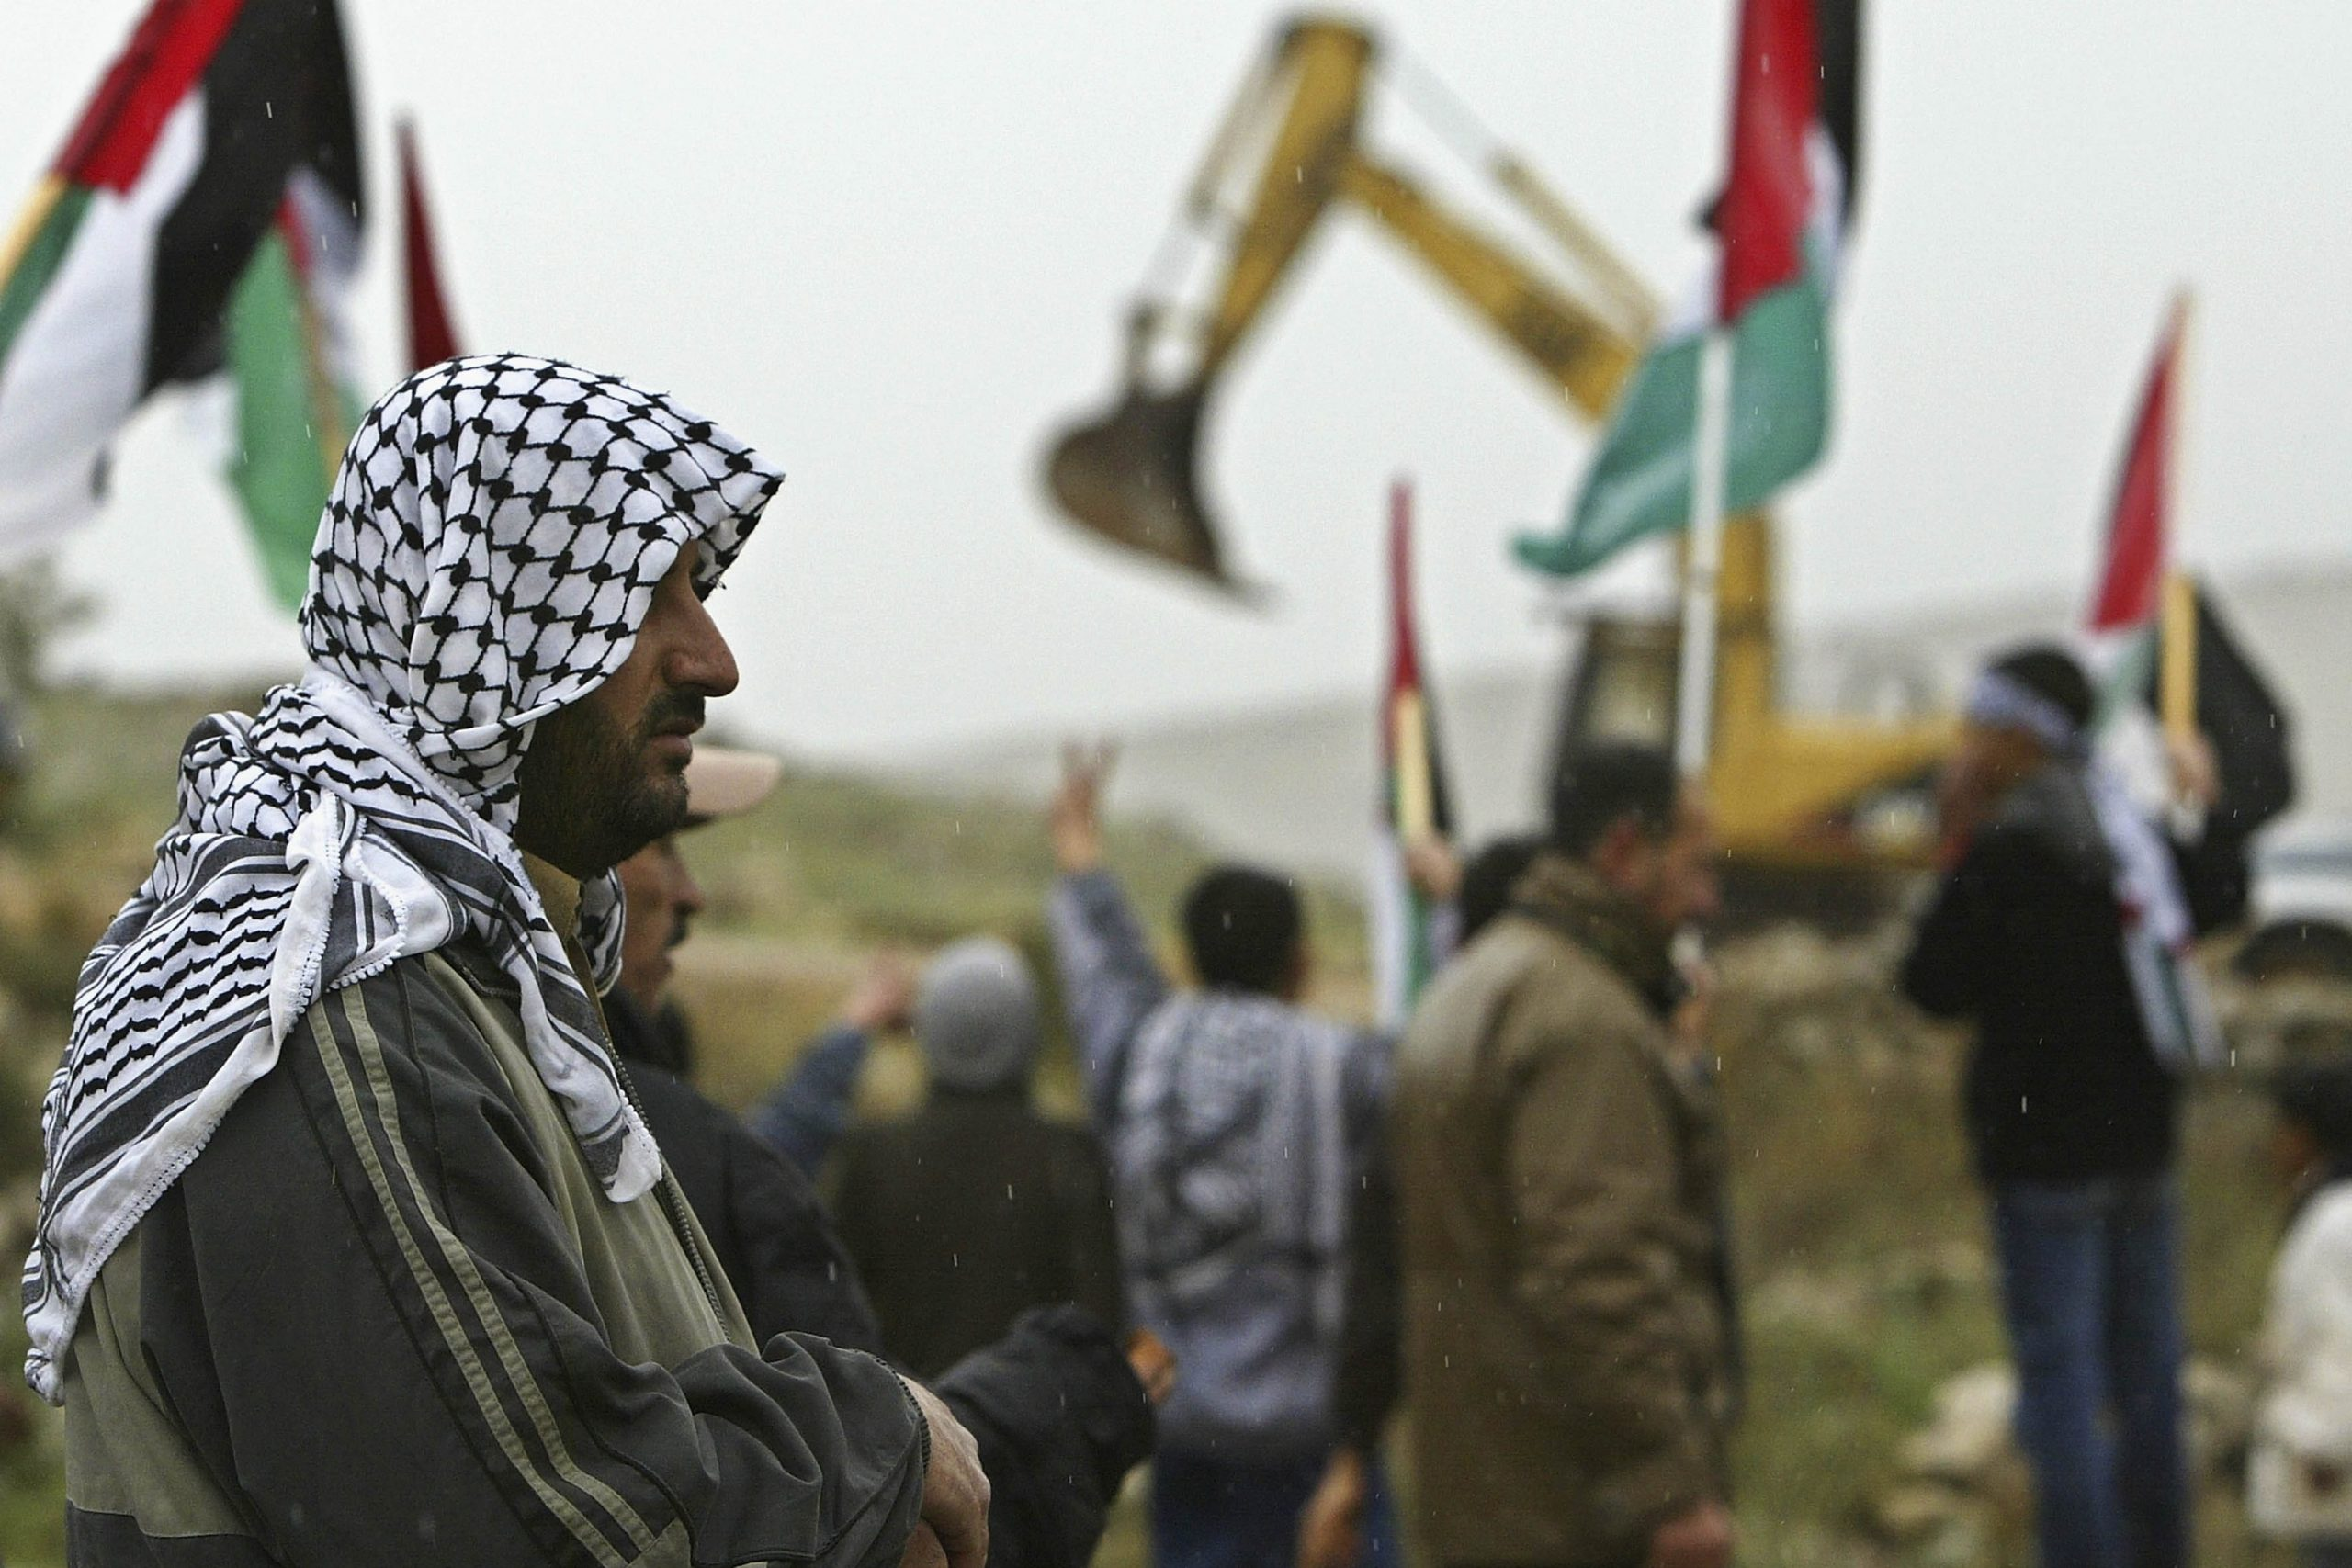 22 January 2004: Palestinian villagers and Israeli and foreign peace activists demonstrate against Israel's security fence being built on land near the West Bank hamlet of Budrus. (Photograph by David Silverman/ Getty Images)